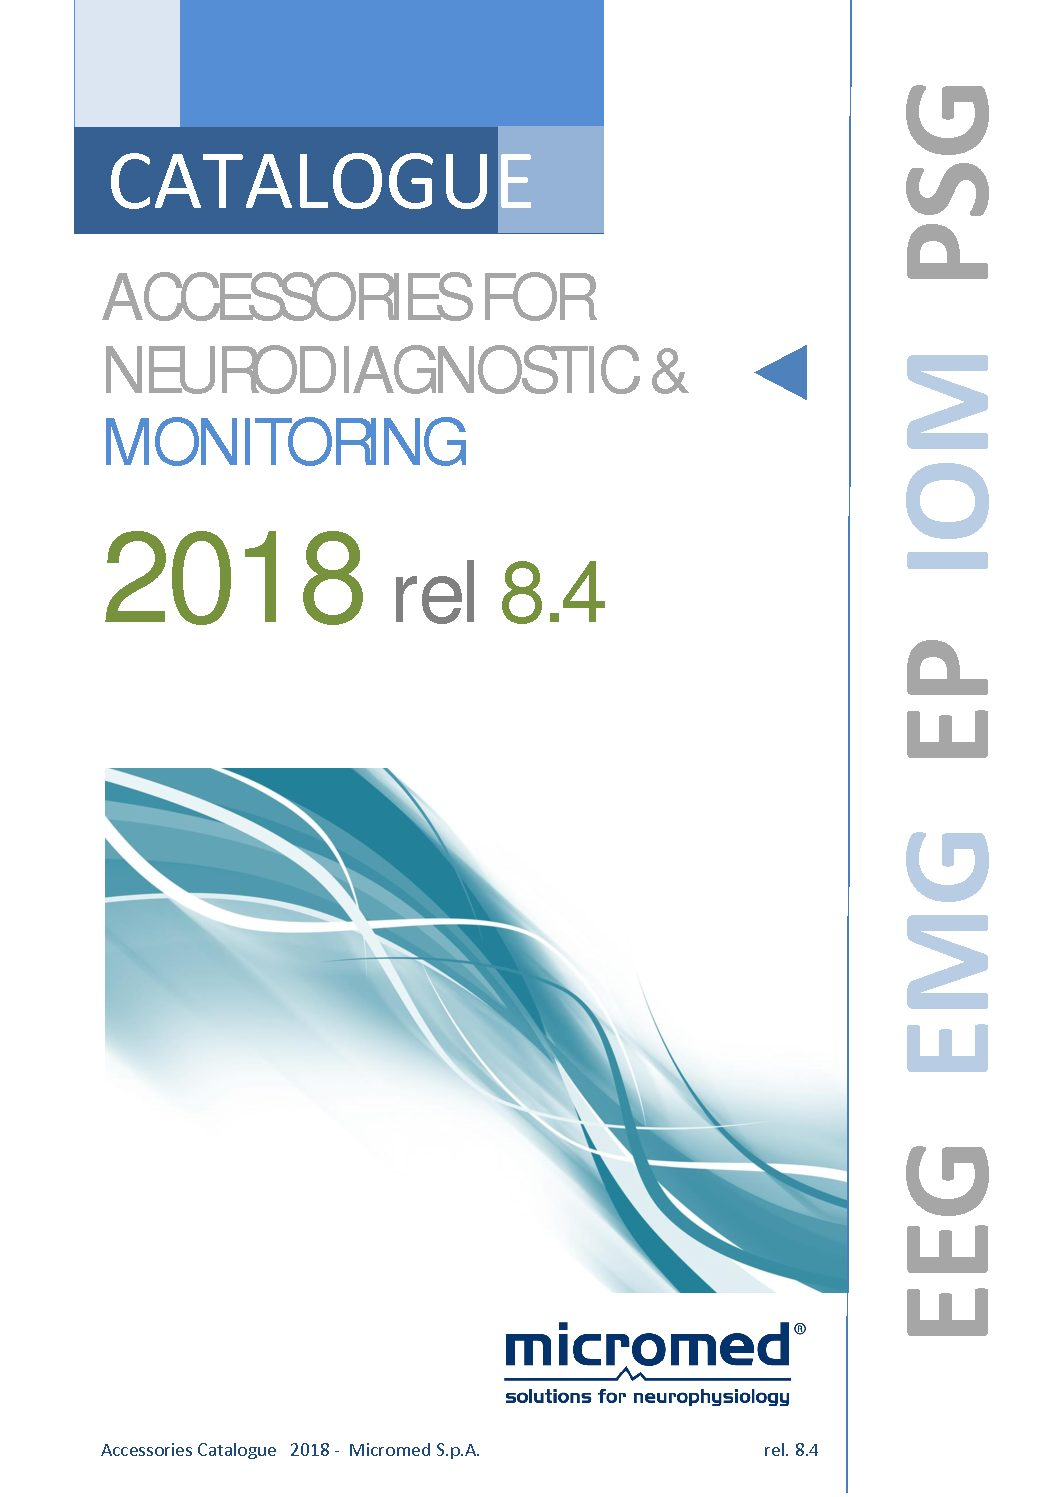 Micromed Accessories Catalogue ENG 8.4 2 pdf - BRAIN QUICK ICU Line